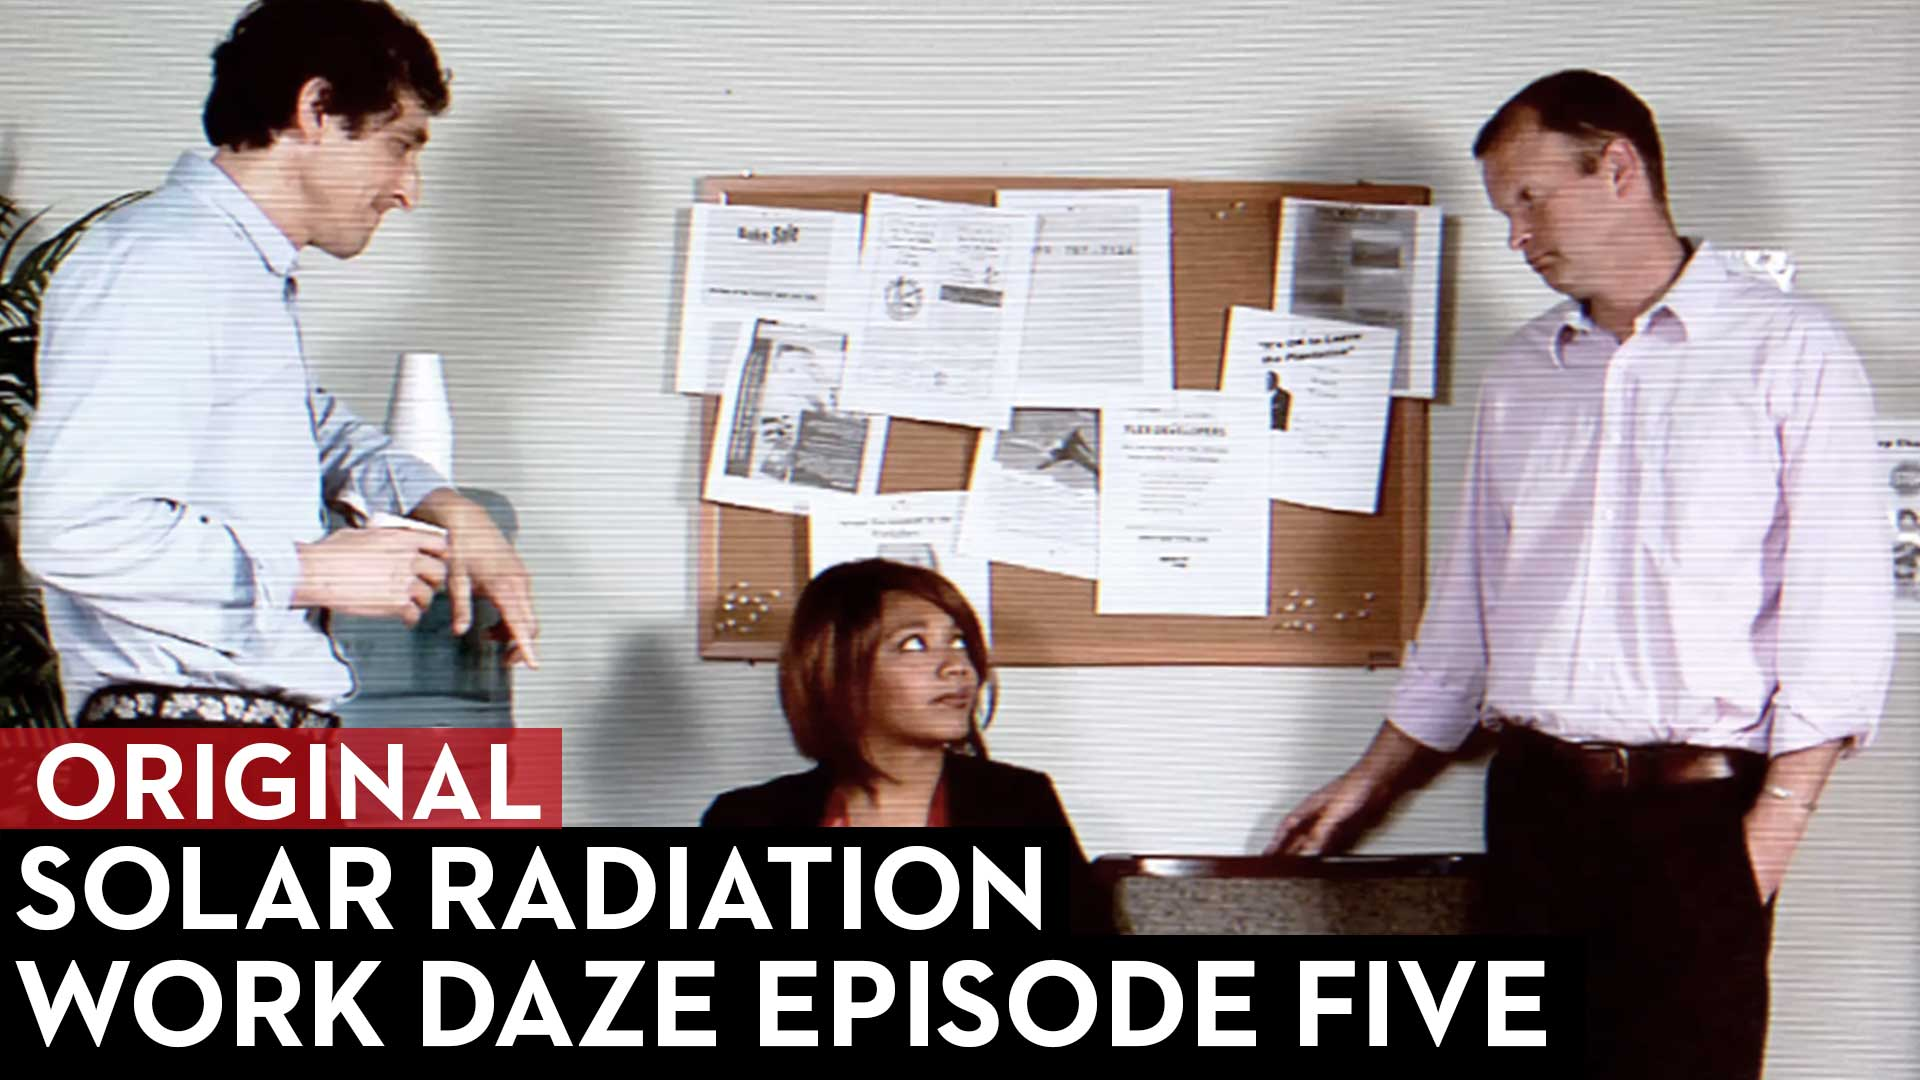 Work Daze Episode Five: Solar Radiation